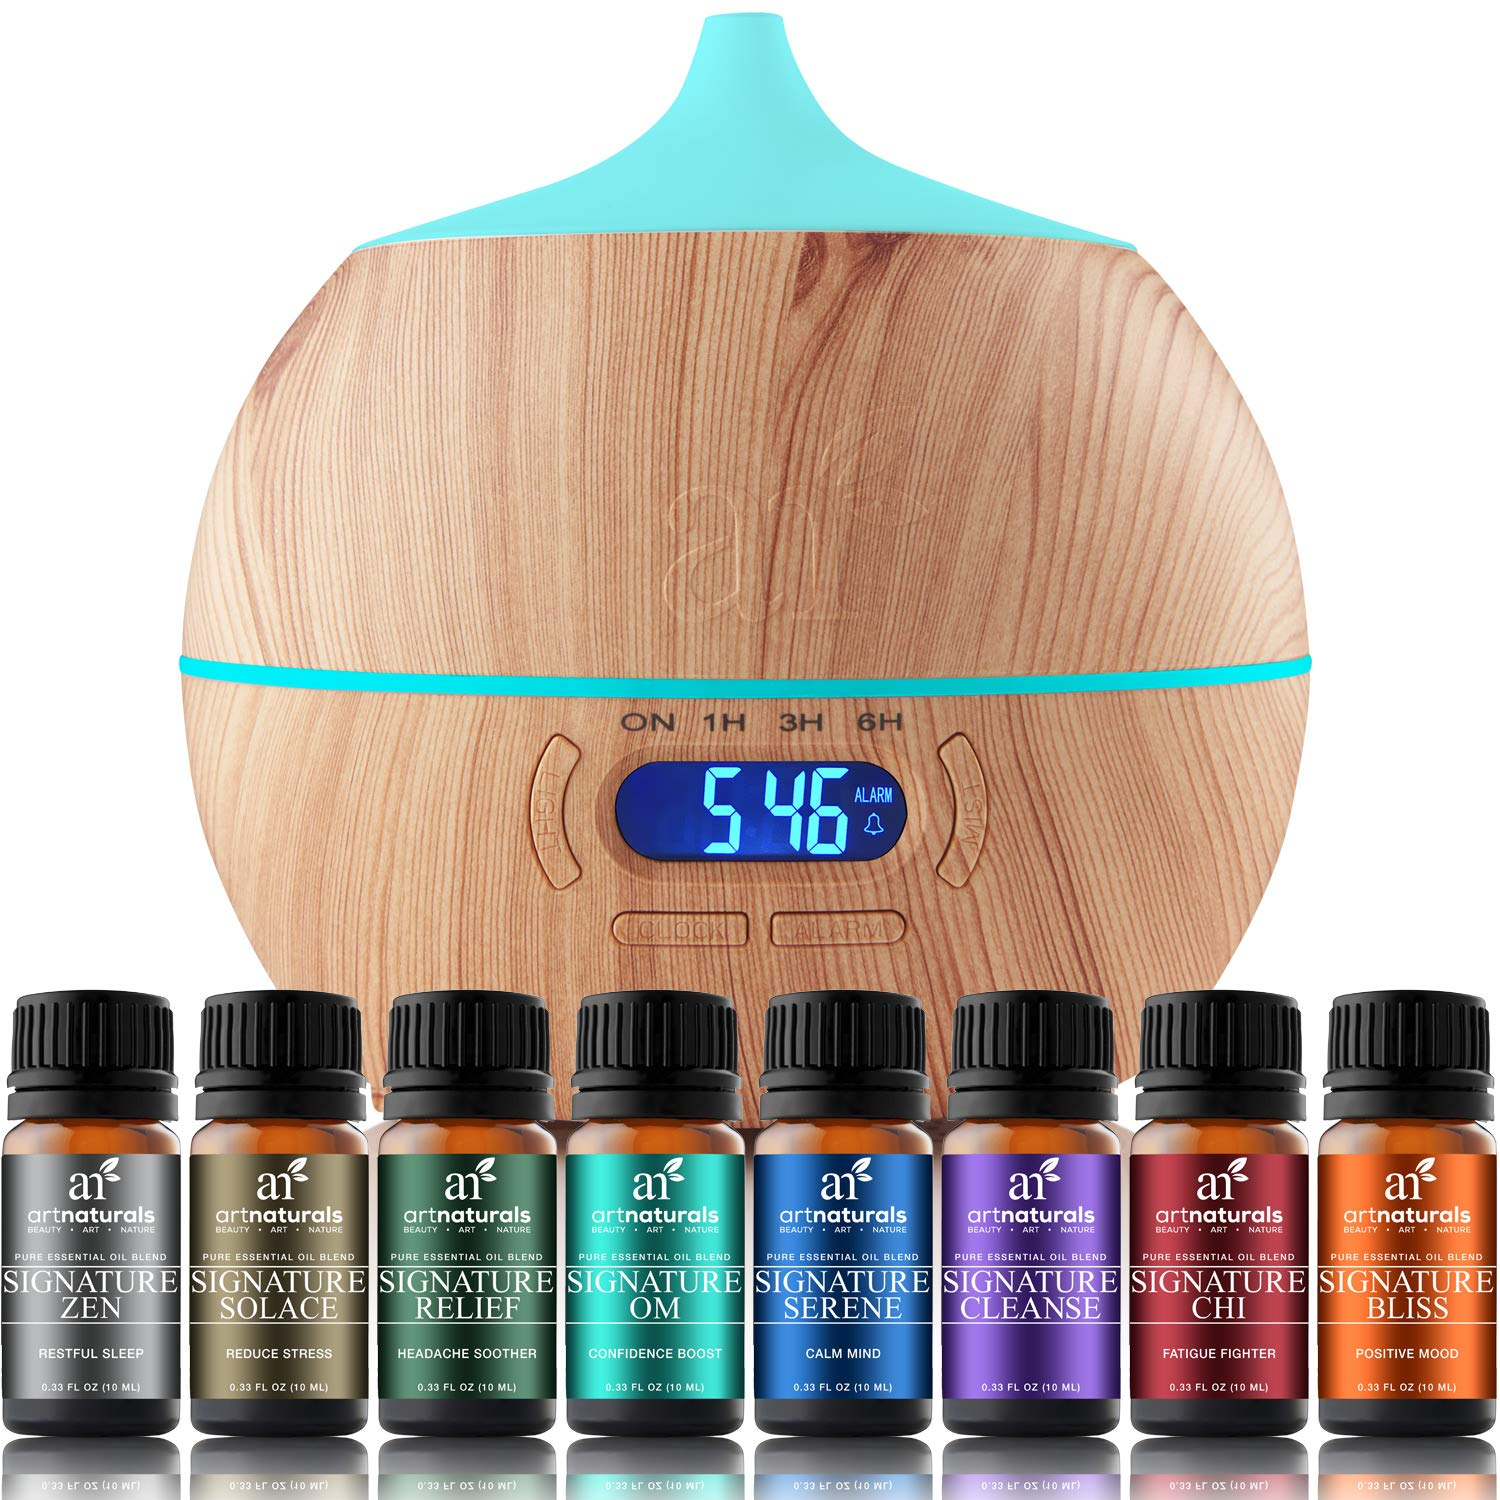 ArtNaturals Essential Oil Blends and Diffuser Set - (8 x 10ml Oils, 400ml Tank) - Aromatherapy Gift Set - Bluetooth Diffuser with LED Lights and Auto Shut Off - for All Rooms